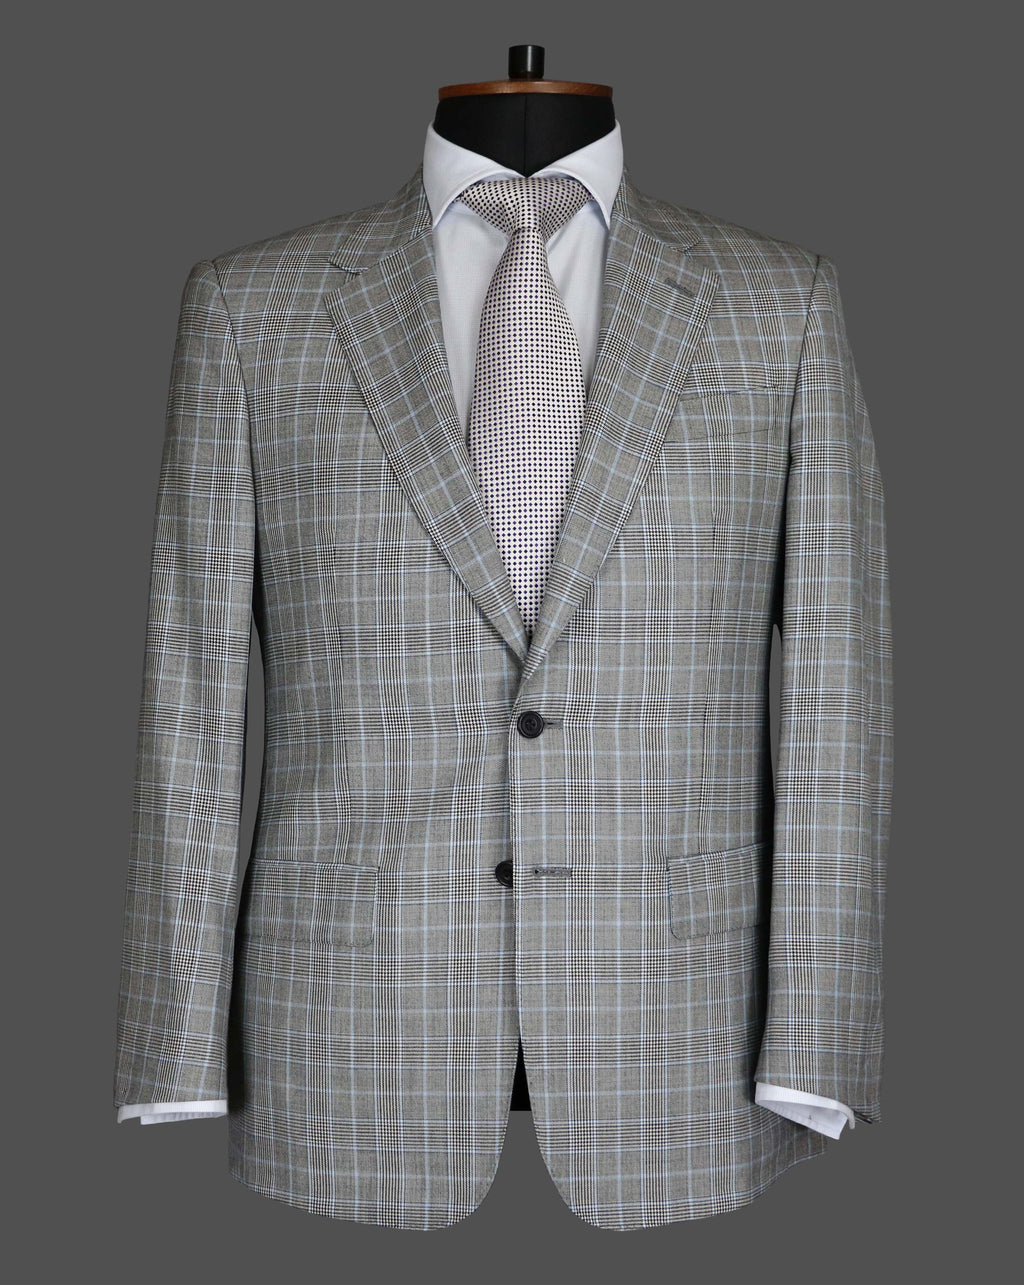 TLA040 - Grey / Pale Blue Suit